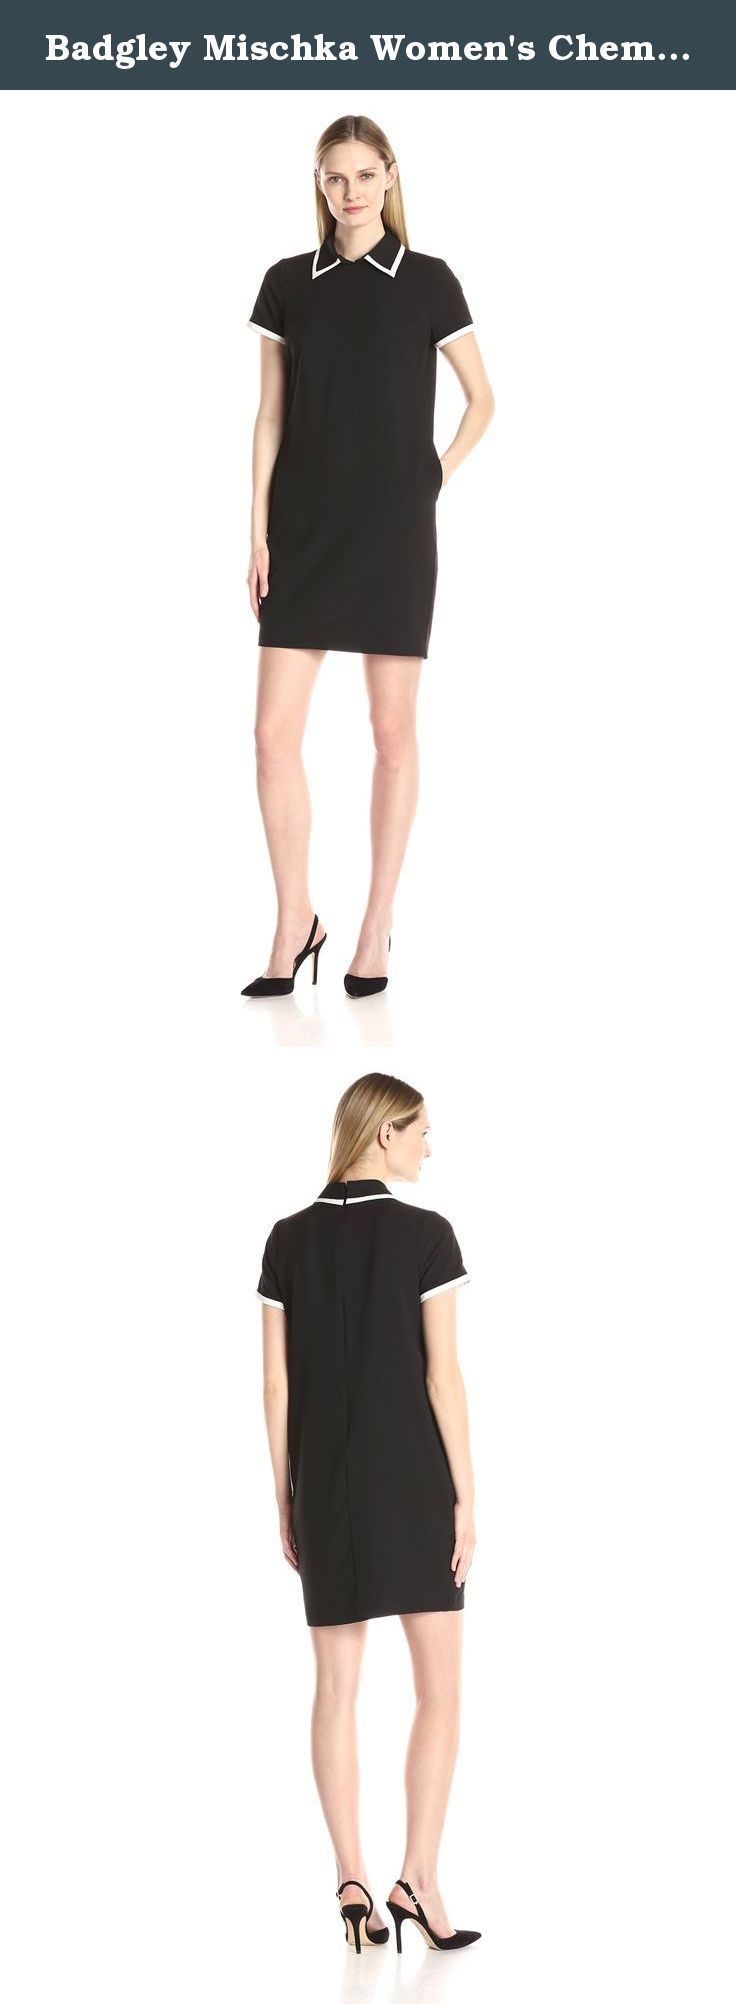 Badgley Mischka Women's Chemise with Contrast Lapel Trim, Black/Ivory, 2. Inspired by the 1920's this chic silhouette is timeless and versatile. The contrast trim creates a updated, modern style.